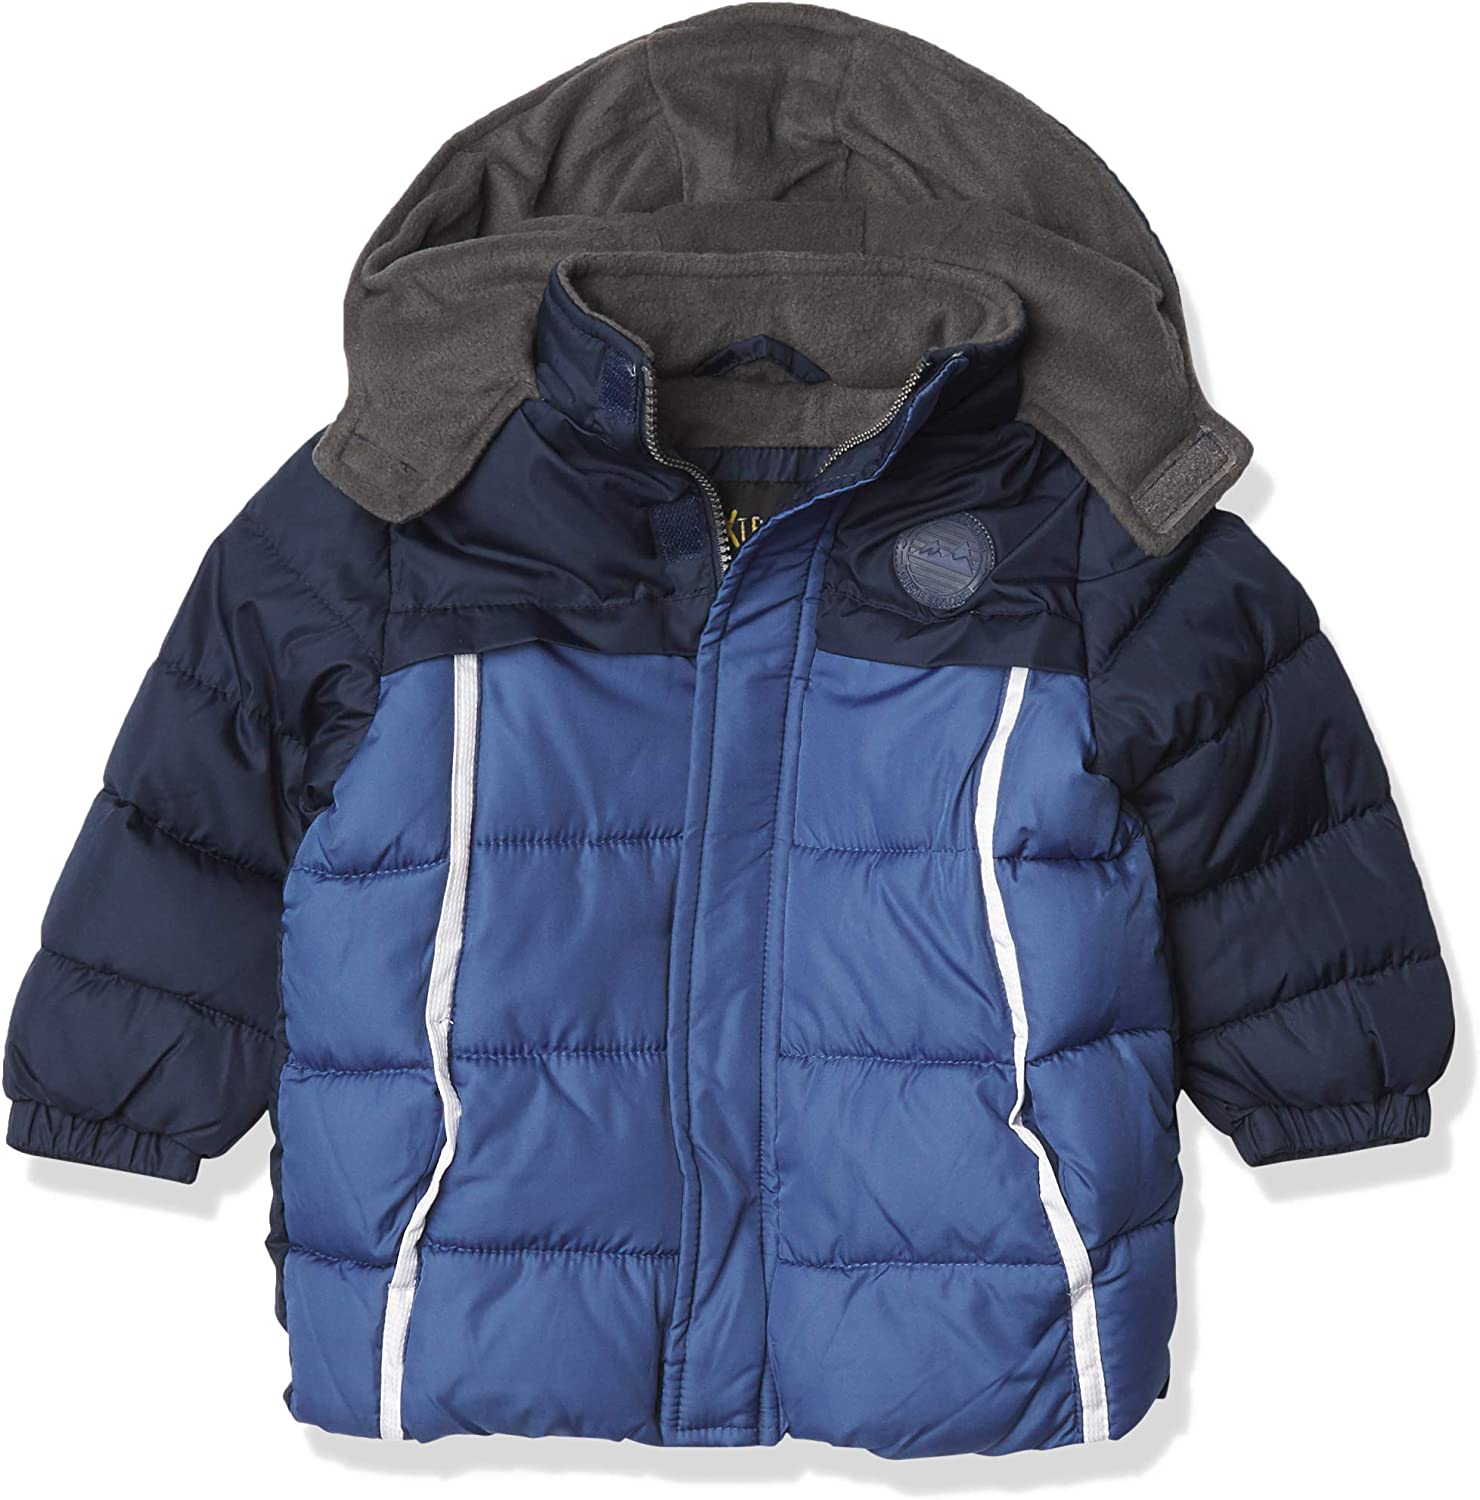 iXtreme boys Colorblock Puffer